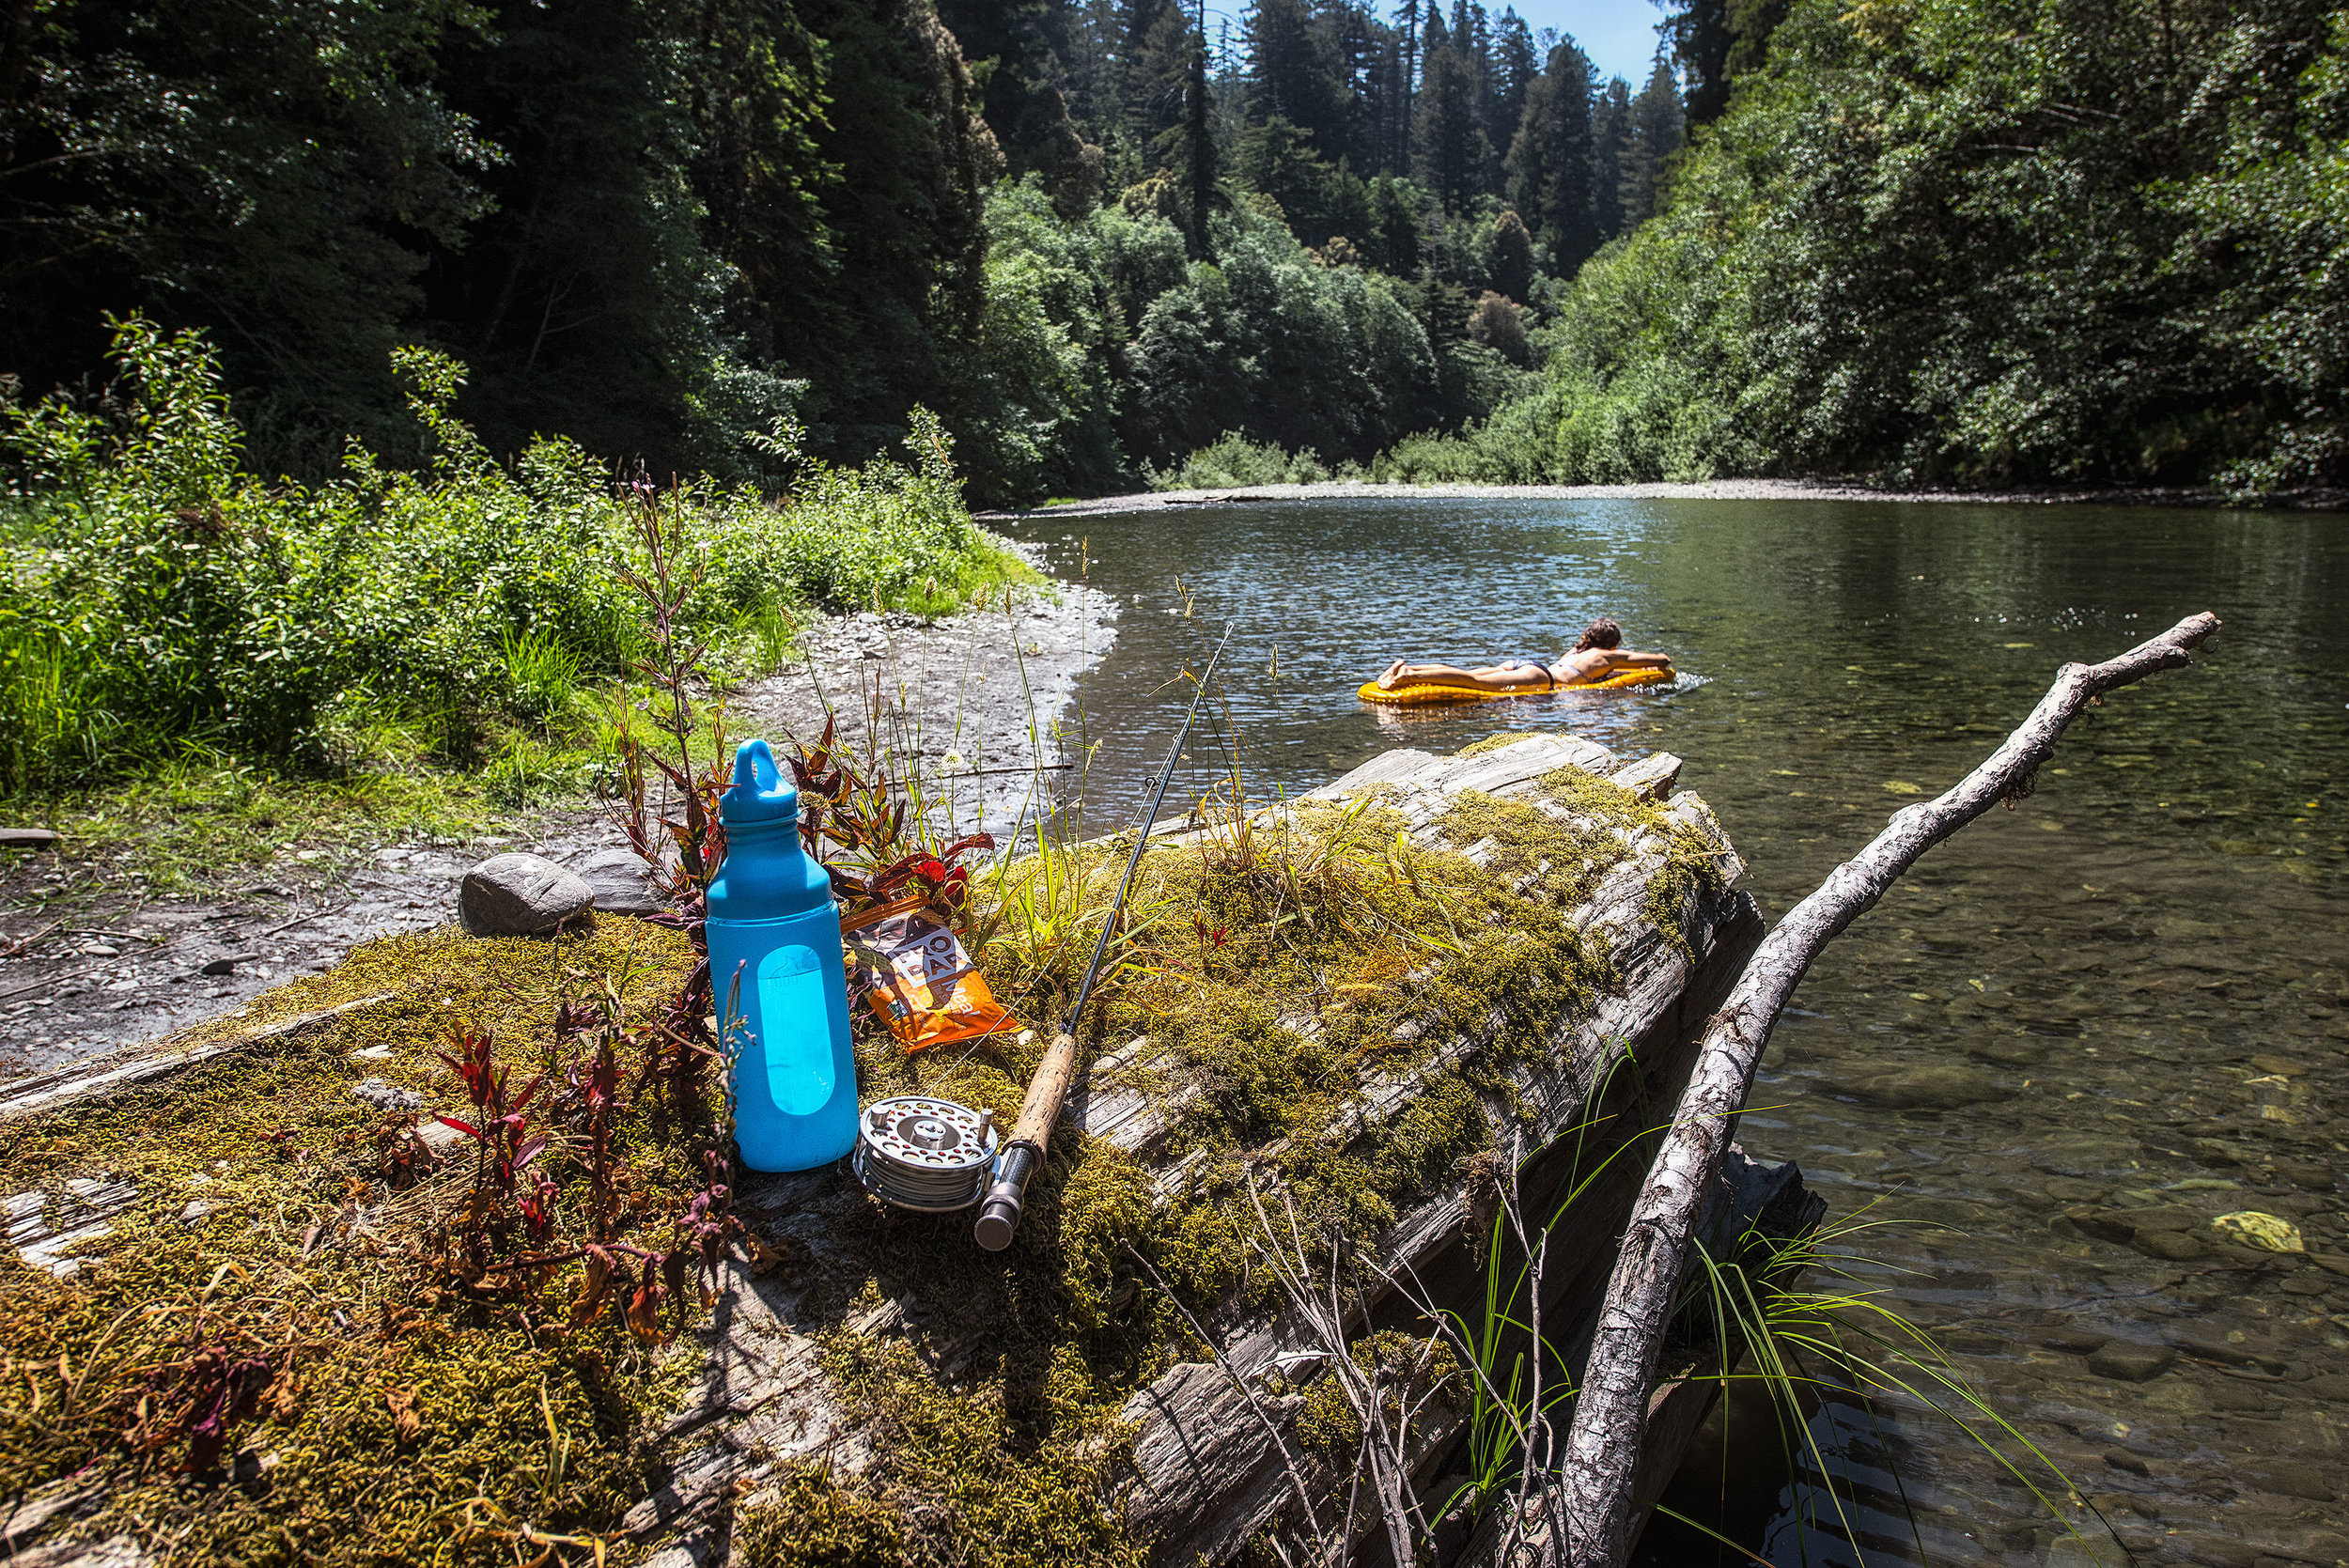 austin-trigg-redwood-water-bottle-float-river-fly-fish-product-lazy-girl-adventure.jpg